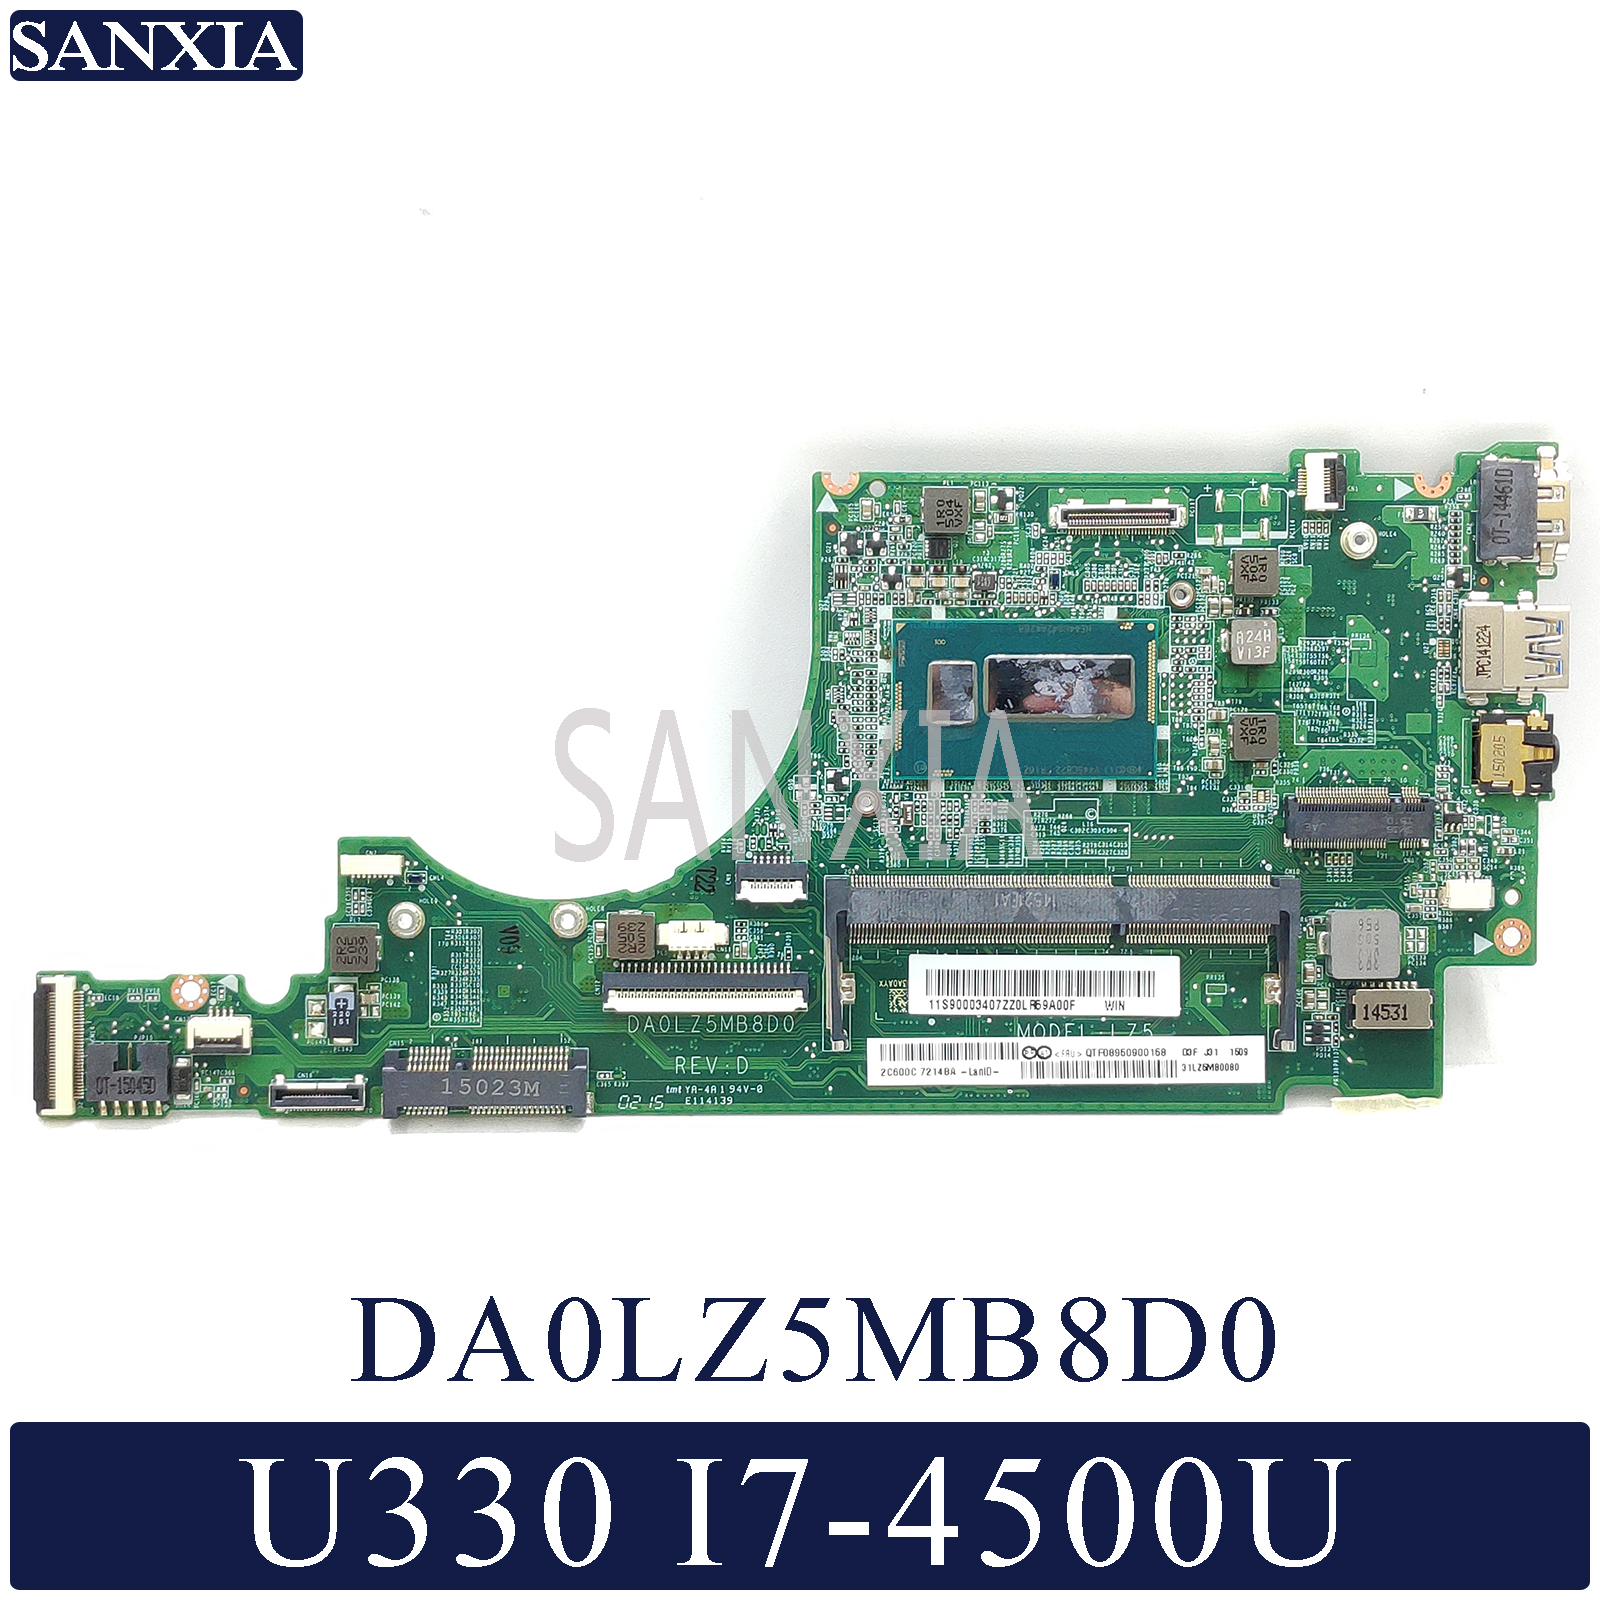 KEFU DA0LZ5MB8D0 Laptop motherboard for Lenovo IdeaPad U330 U330P U330T original mainboard I7-4500UKEFU DA0LZ5MB8D0 Laptop motherboard for Lenovo IdeaPad U330 U330P U330T original mainboard I7-4500U